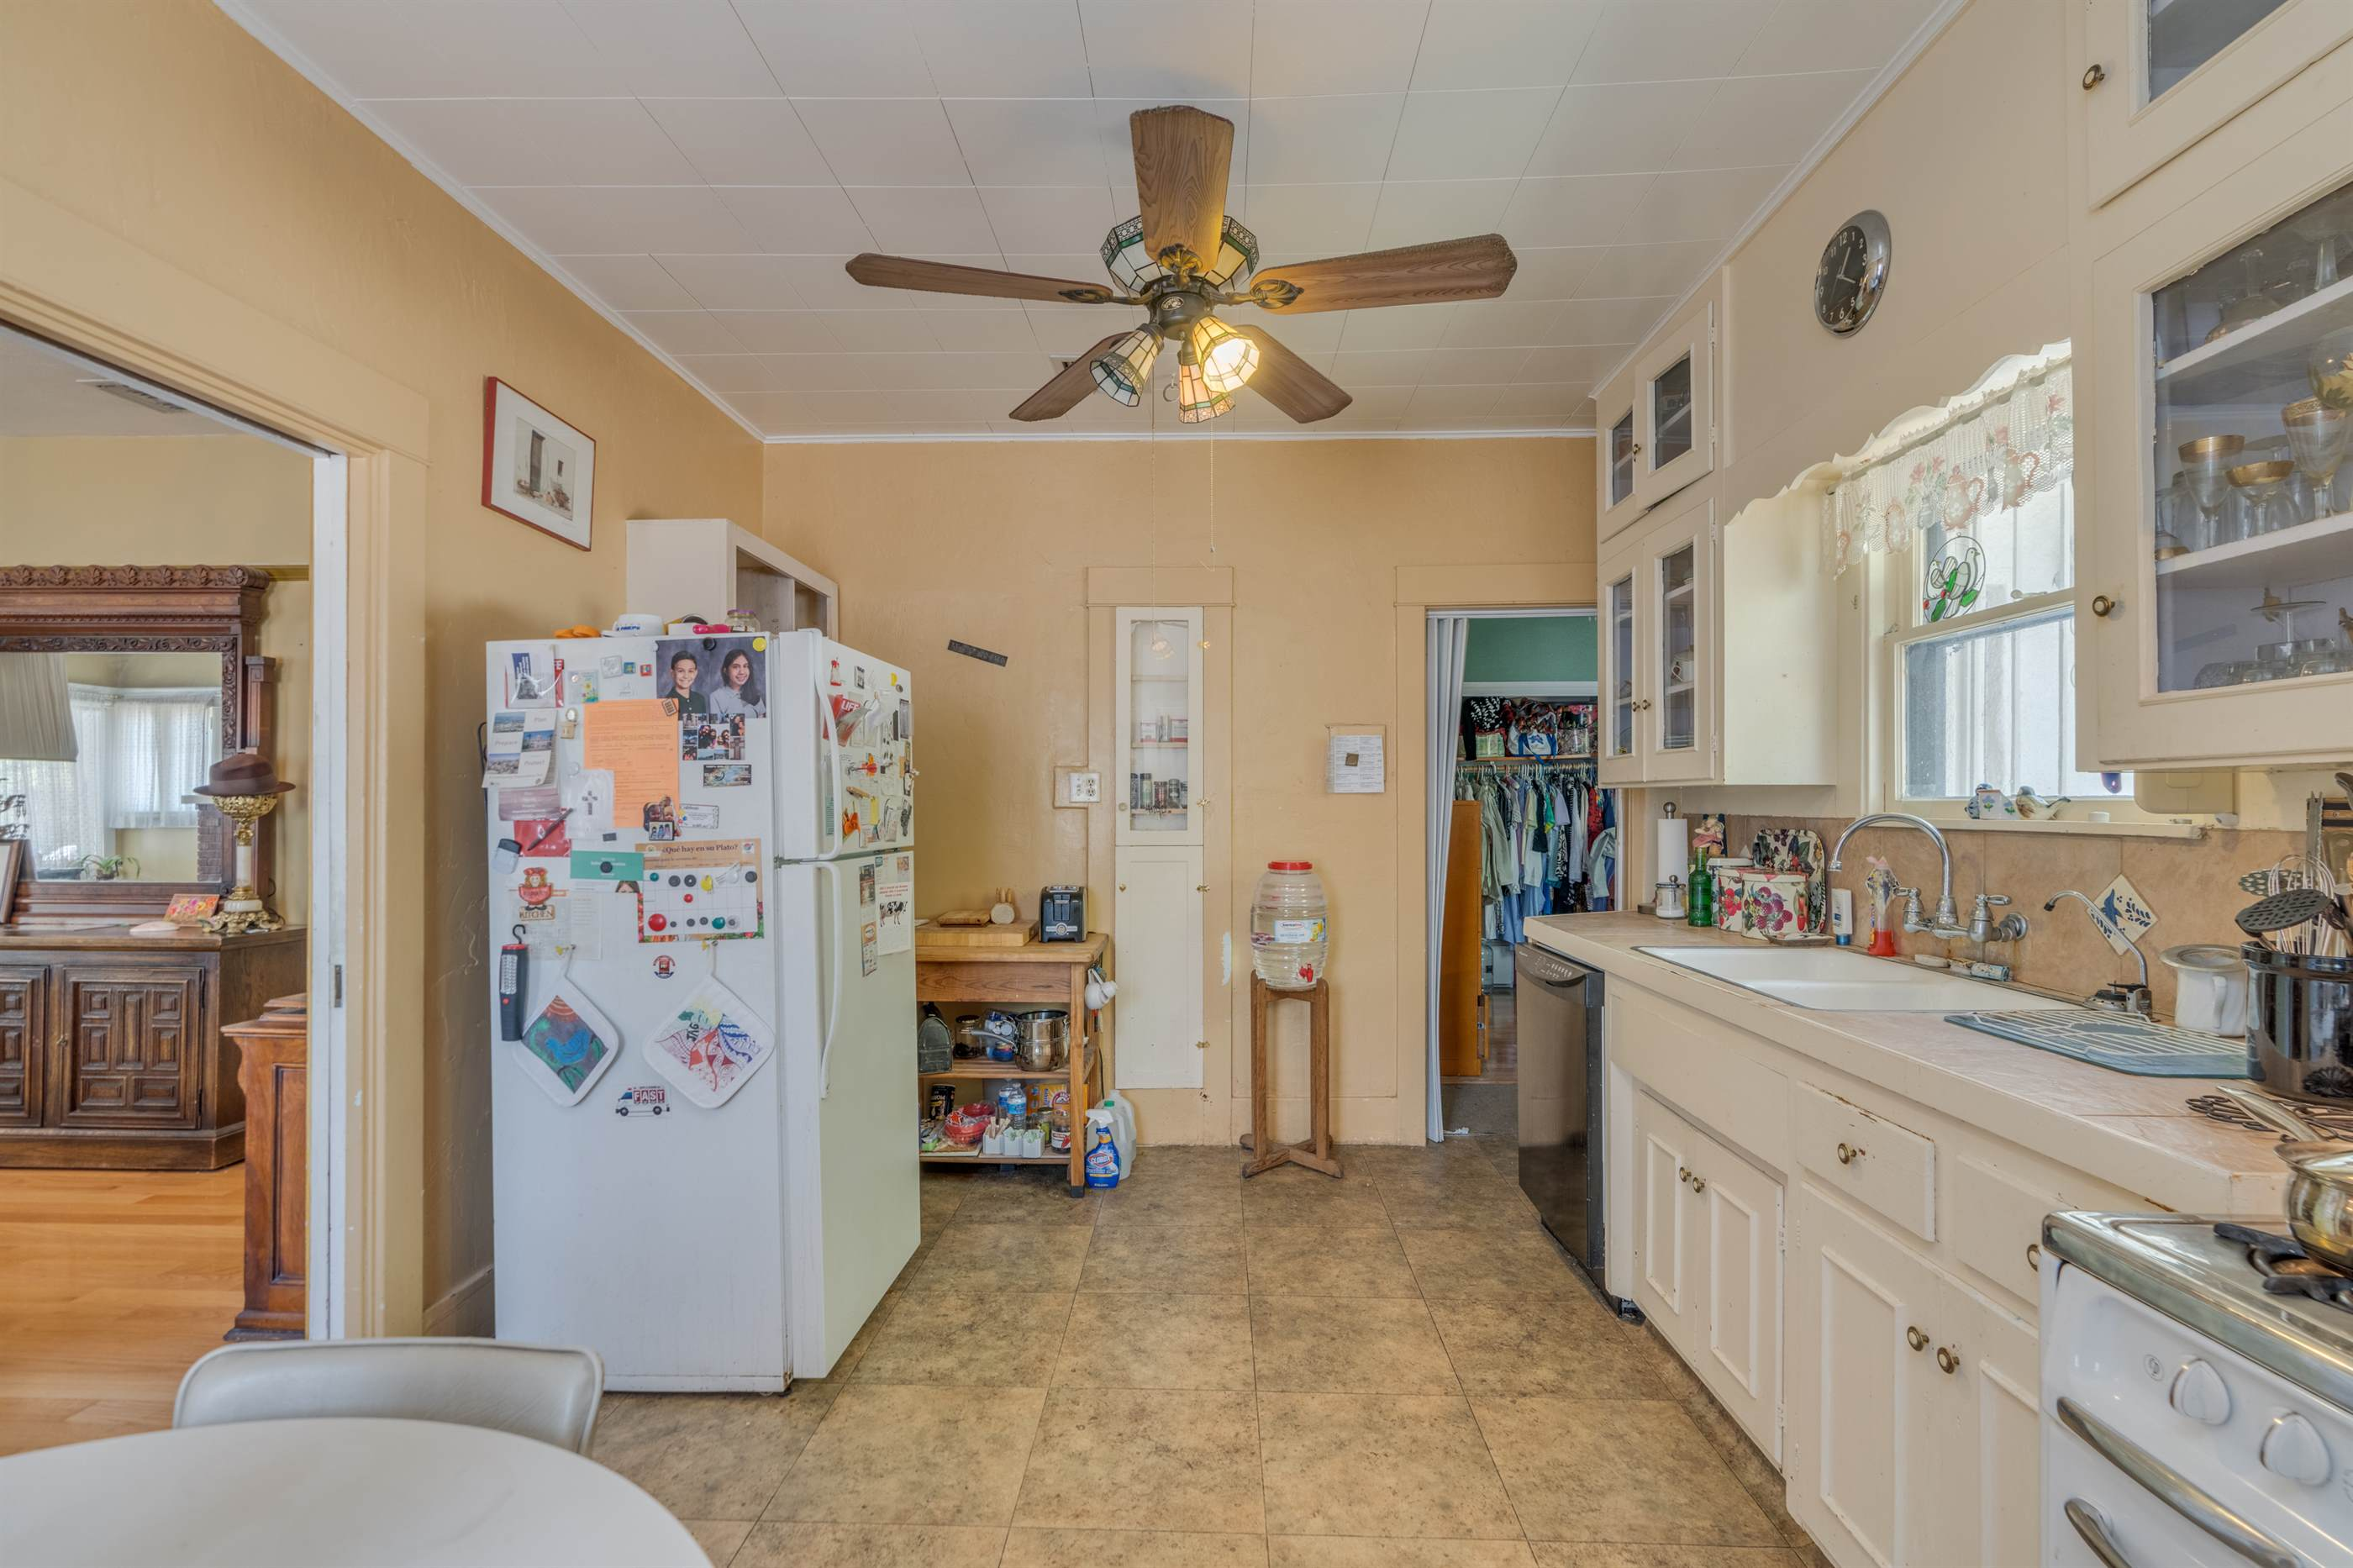 543 S 6th Ave, Tucson, AZ 85701